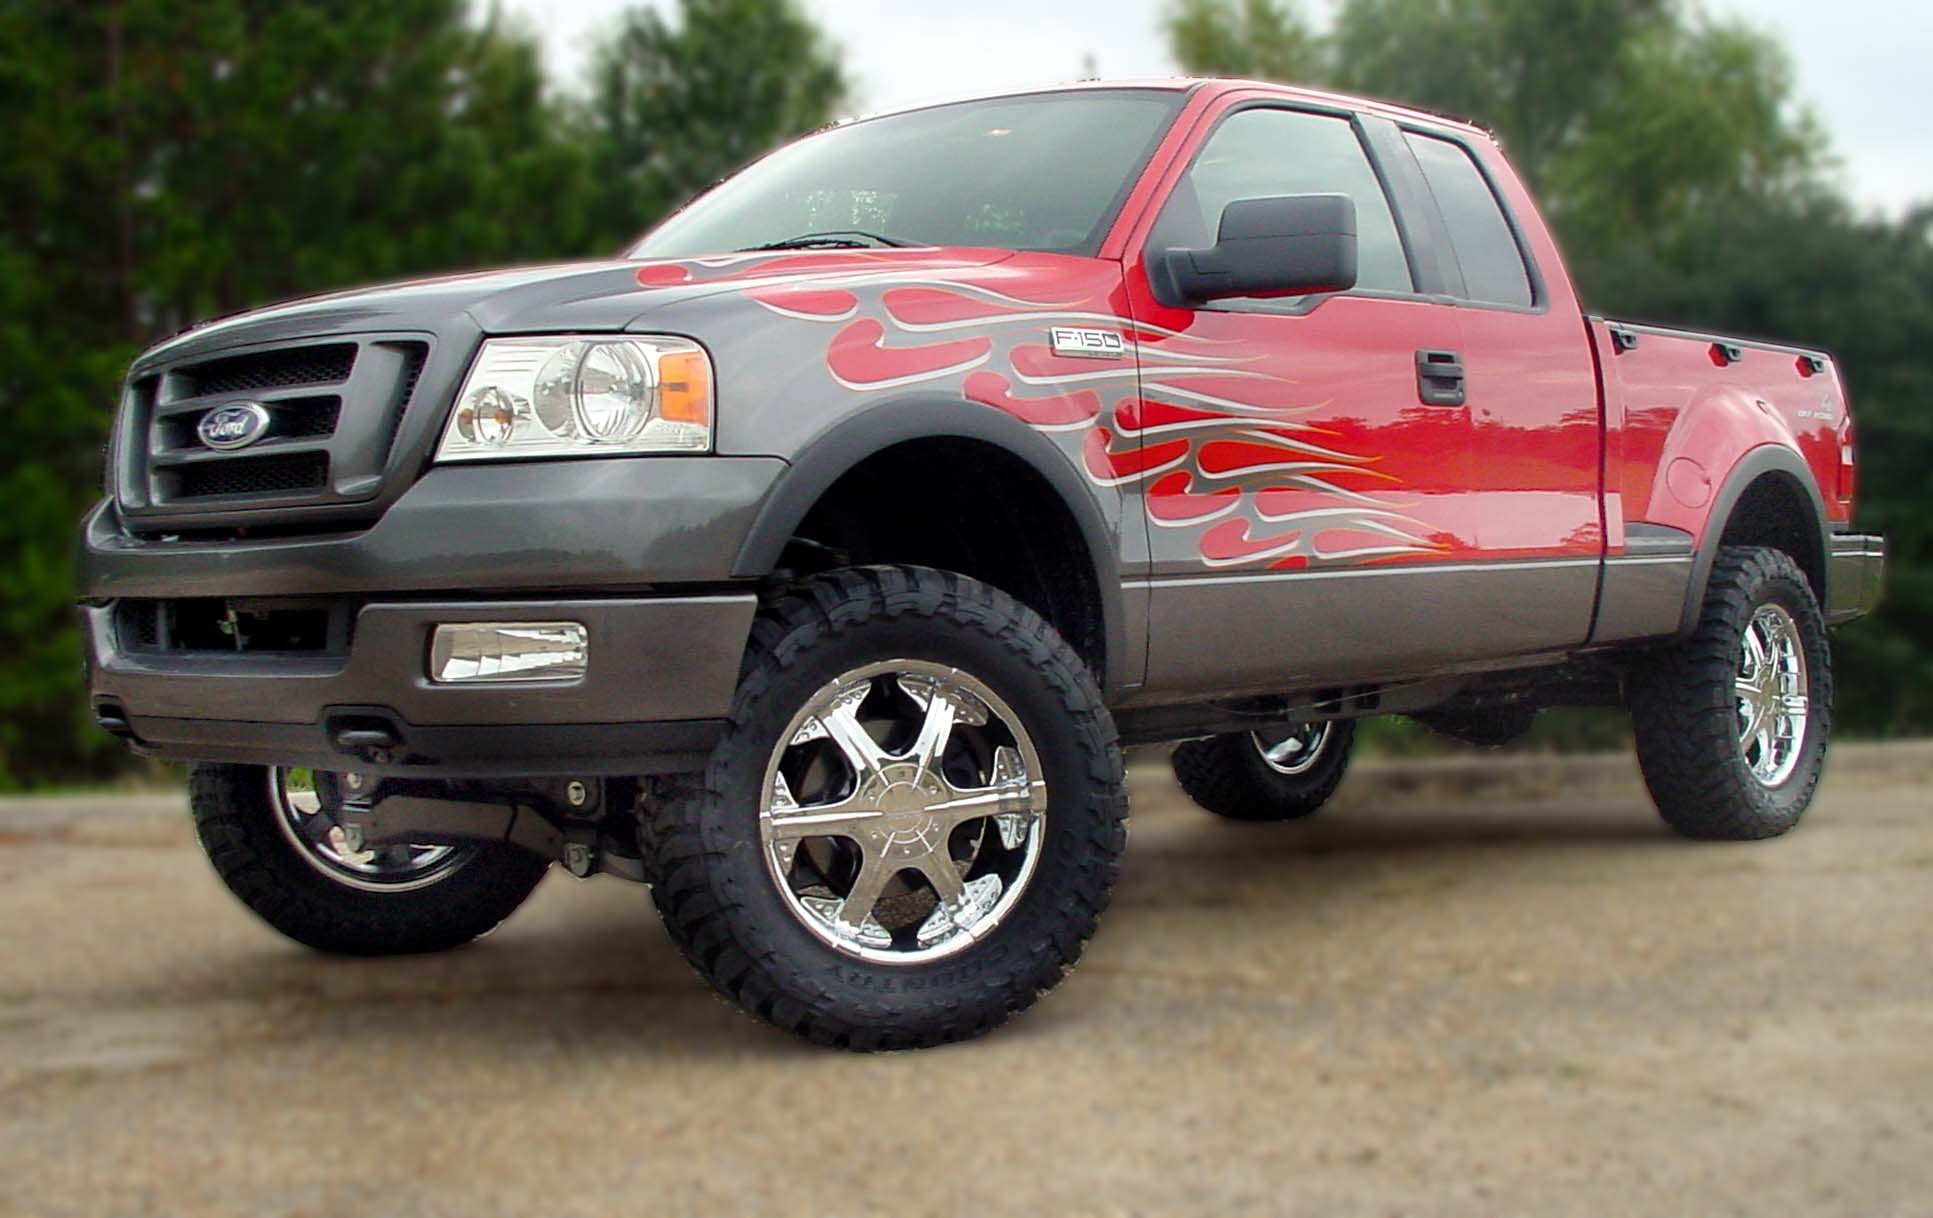 ford f 150 ranger 4x4 photos reviews news specs buy car. Black Bedroom Furniture Sets. Home Design Ideas